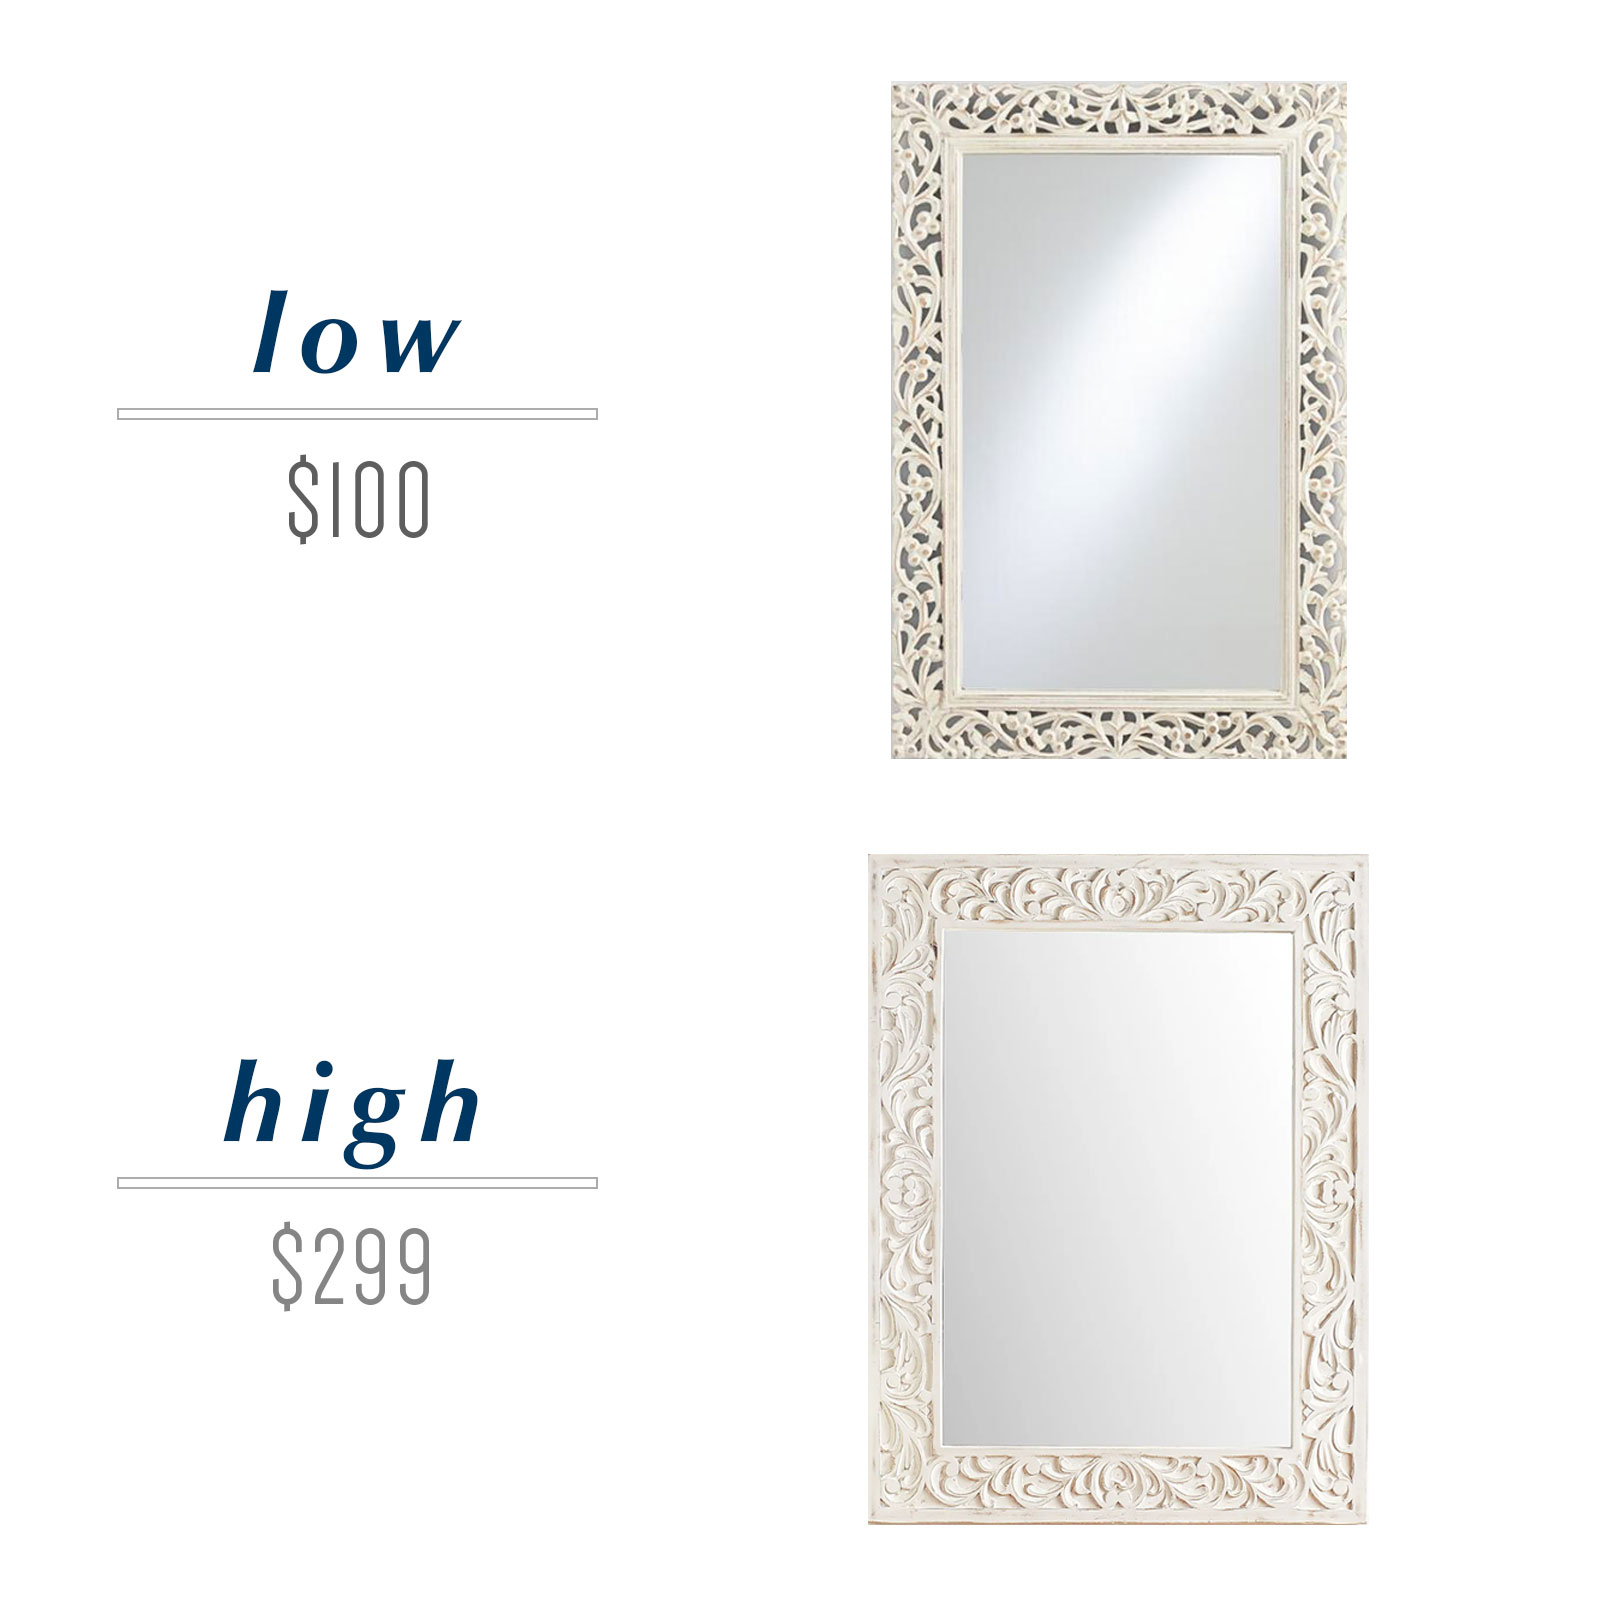 Get the look for less or decide to splurge! Come see the budget-friendly and spend-worthy pieces of furniture in this blog post including the high/low sources for these carved wood whitewashed mirrors.